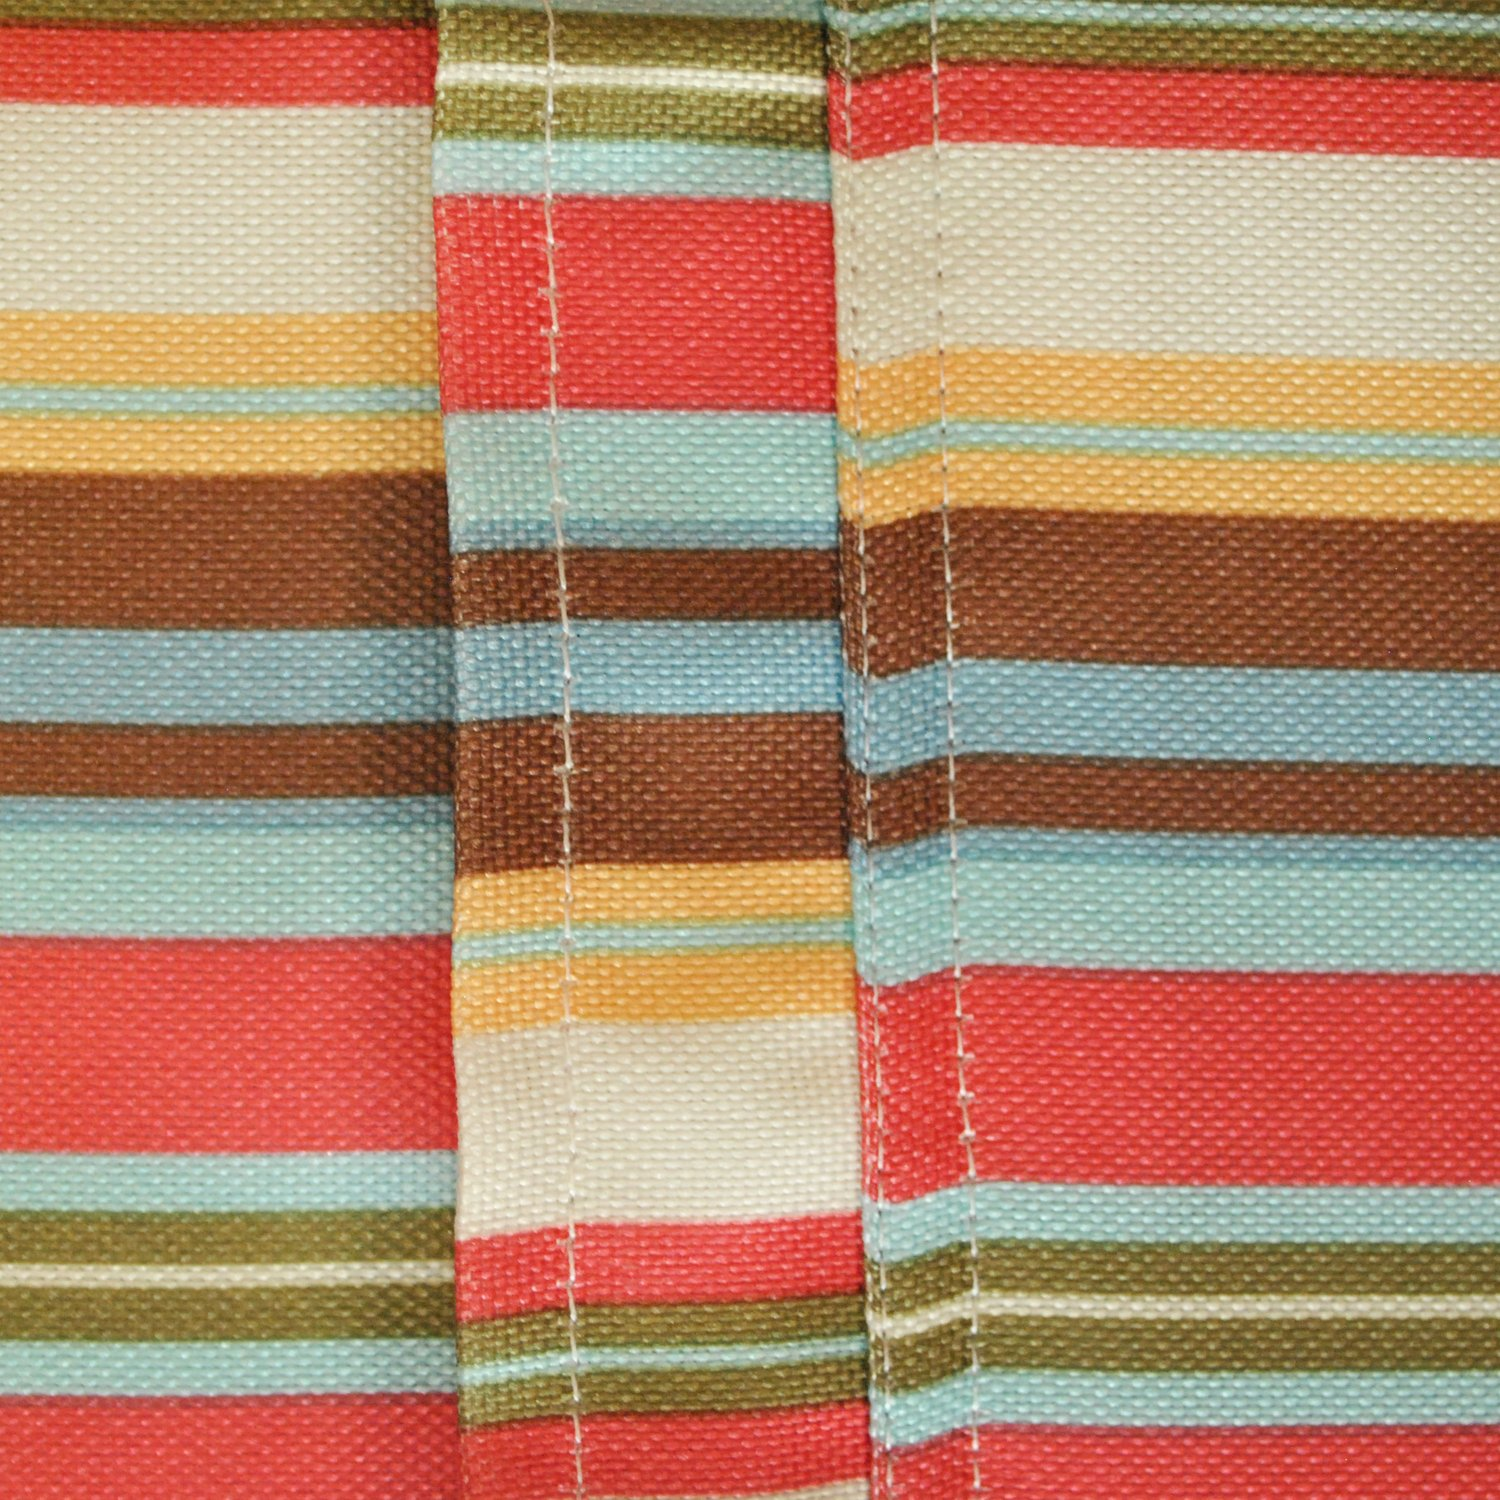 DII Spring & Summer Outdoor Tablecloth, Spill Proof and Waterproof with Zipper and Umbrella Hole, Host Backyard Parties, BBQs, & Family Gatherings - (60x84'' - Seats 6 to 8) Warm Summer Stripe by DII (Image #4)